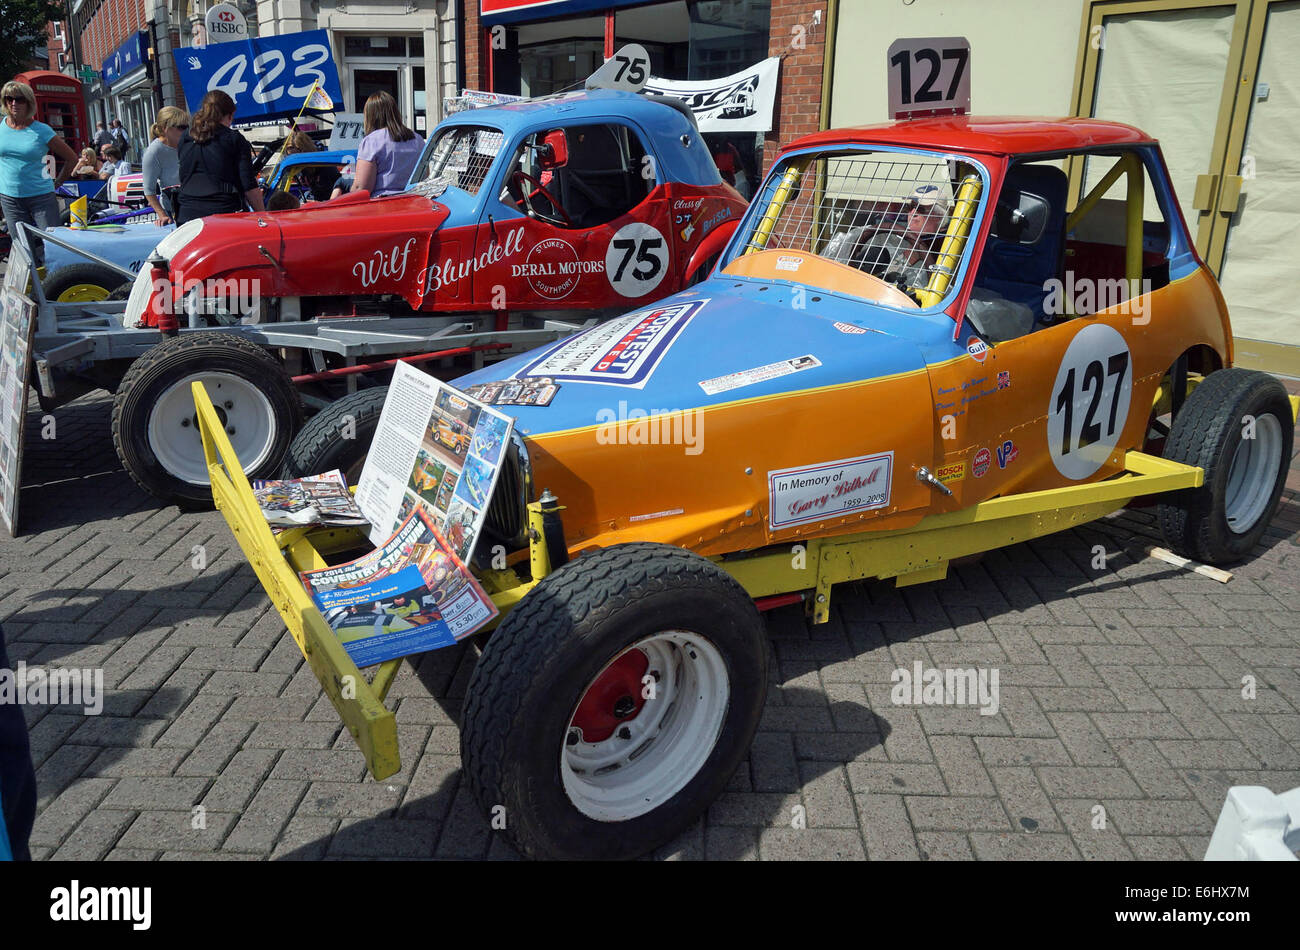 Ormskirk, Lancashire, UK. 24th August, 2014. A vast array of vintage and classic motor vehicles were on display - Stock Image